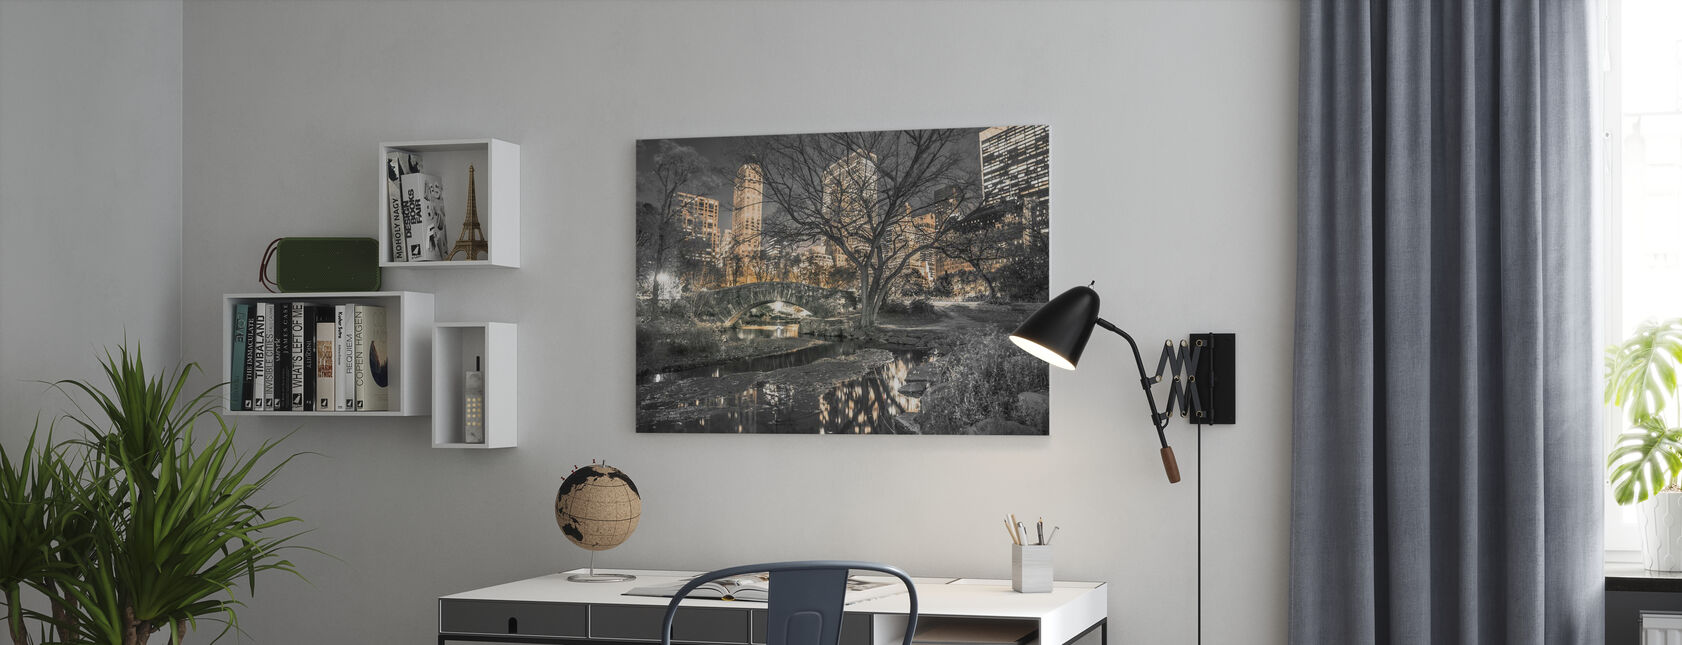 New York - Central Park - Canvas print - Office